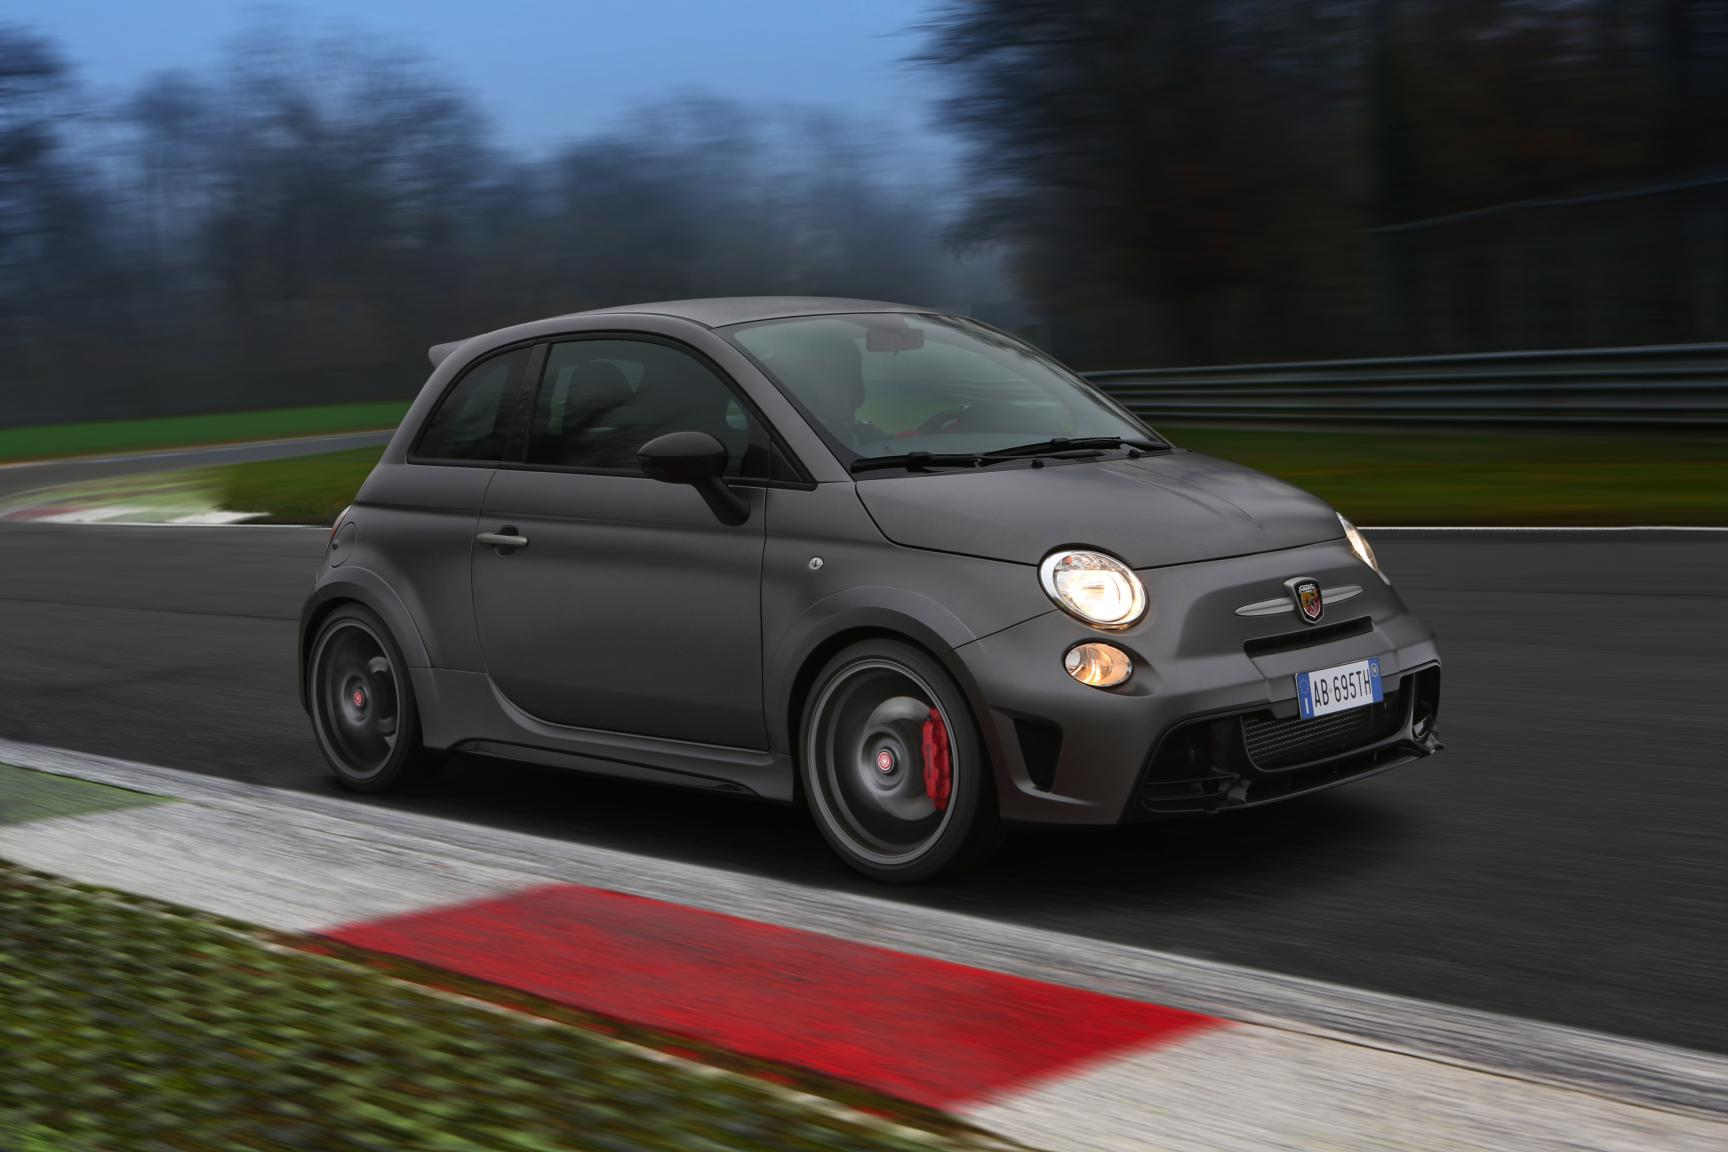 fiat 500 abarth 695 biposto is duur heel duur nee heel heel erg duur drivessential. Black Bedroom Furniture Sets. Home Design Ideas